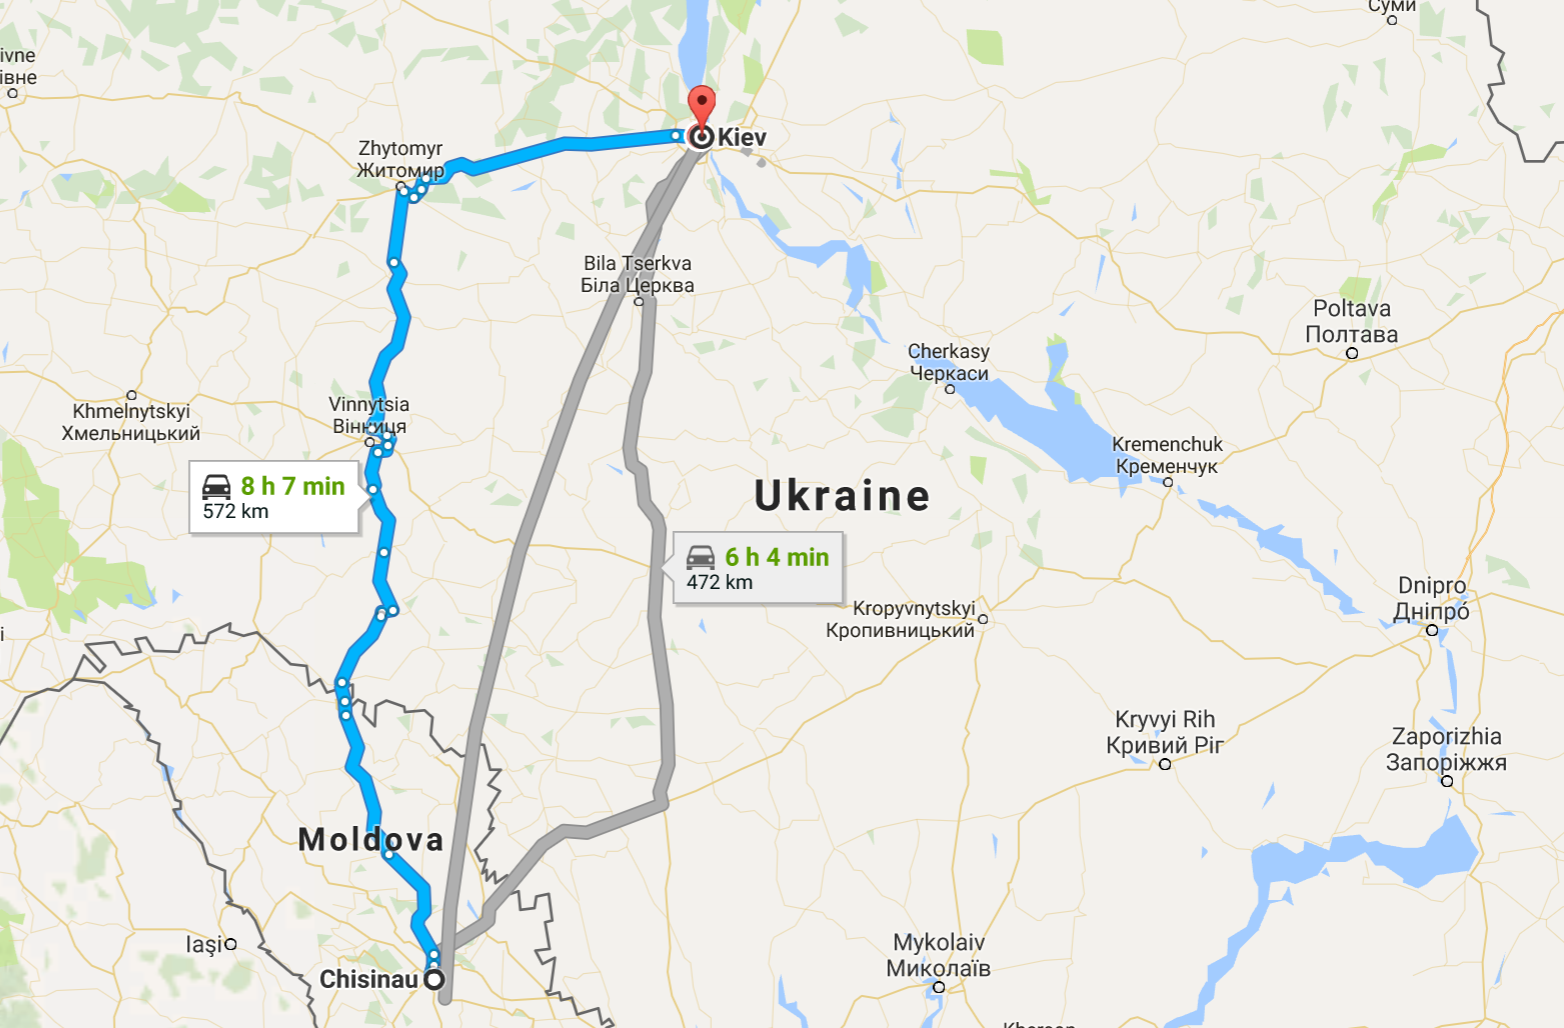 Travel guide taking the bus from Chisinau to Kiev Anthony Kaos Blog